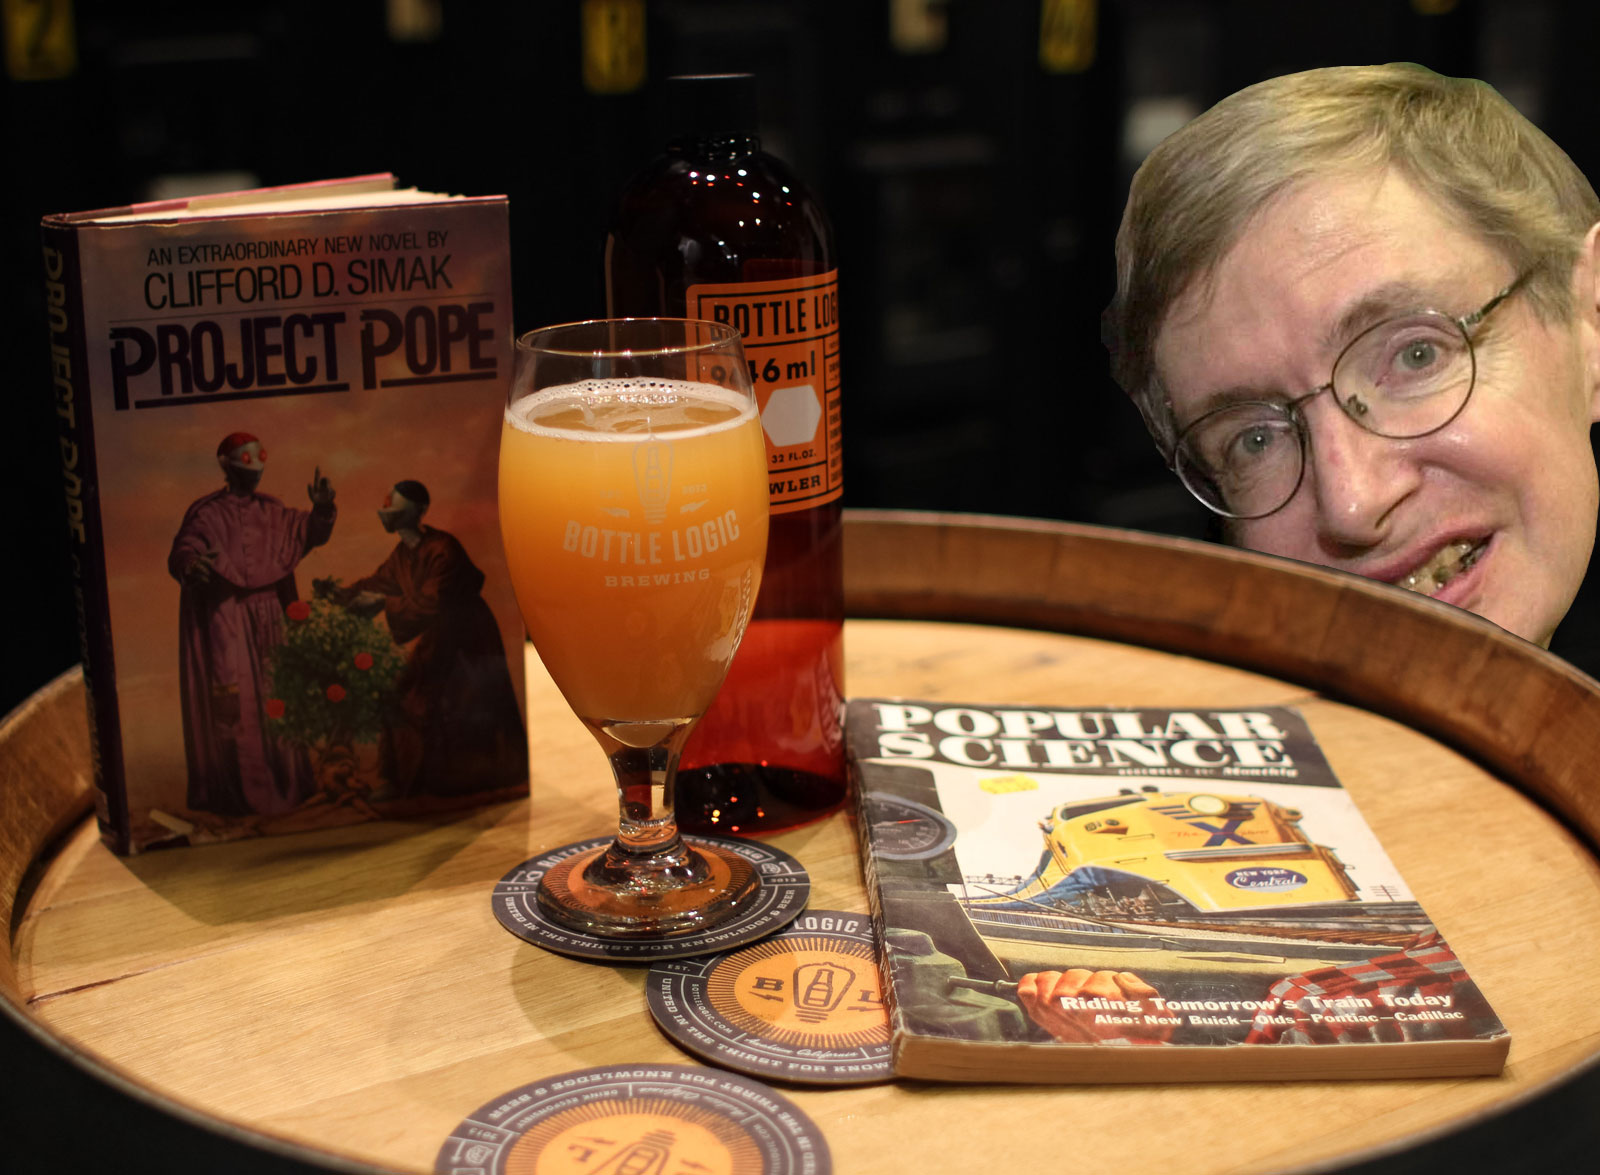 Can't believe Stephen Hawking photobombed a perfectly good beer pic